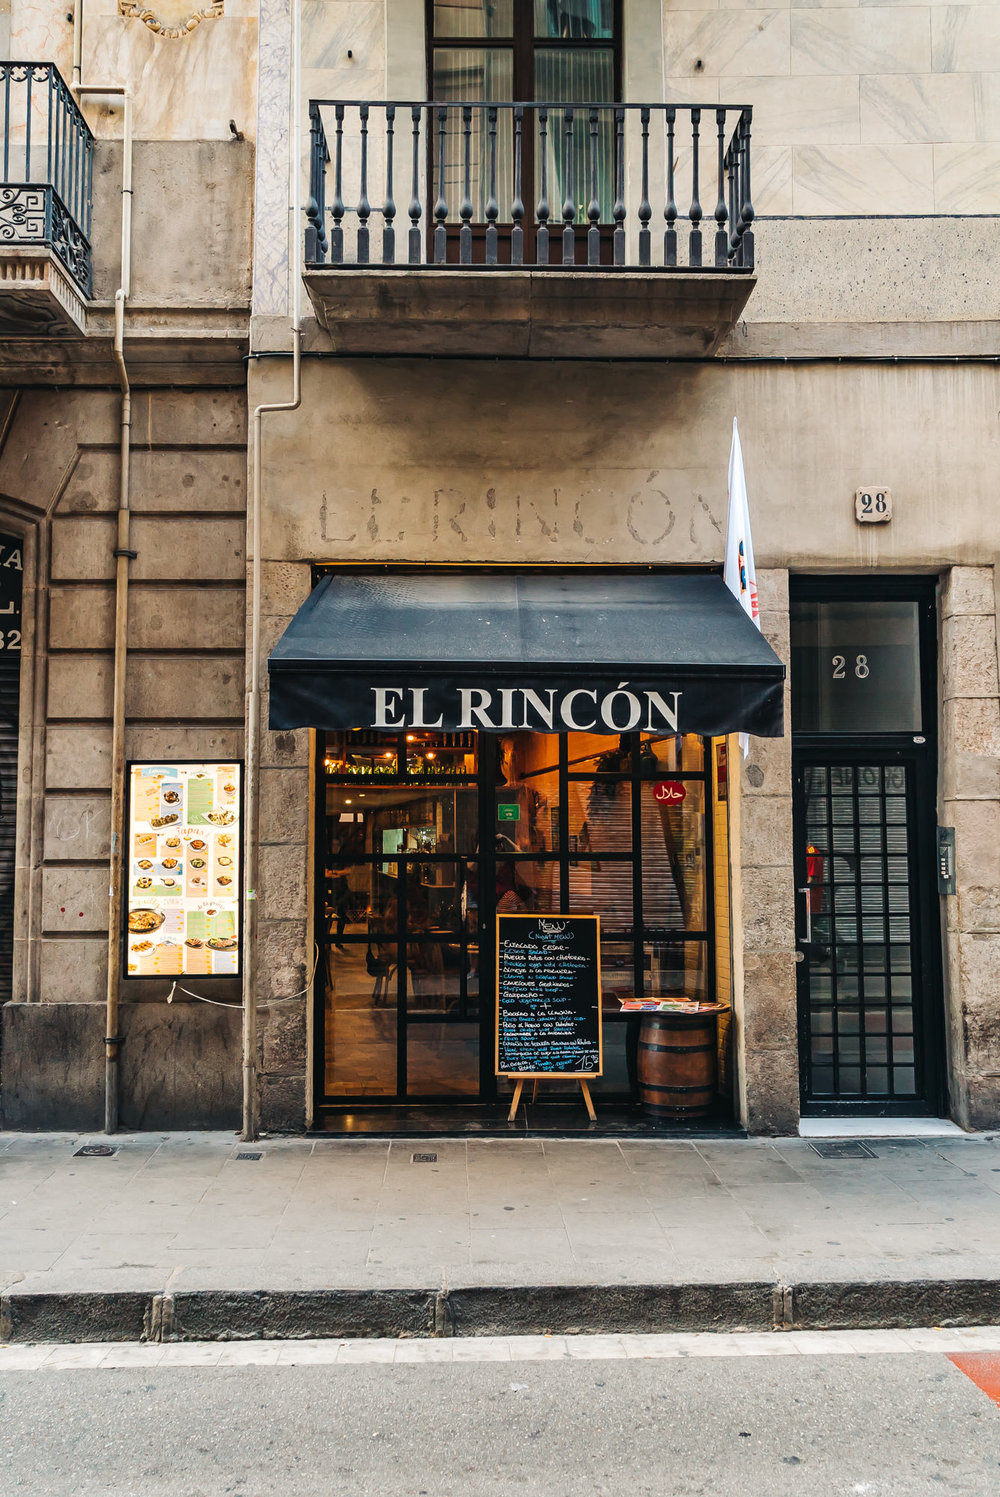 The delicious tapas restaurant nearby, El Rincon